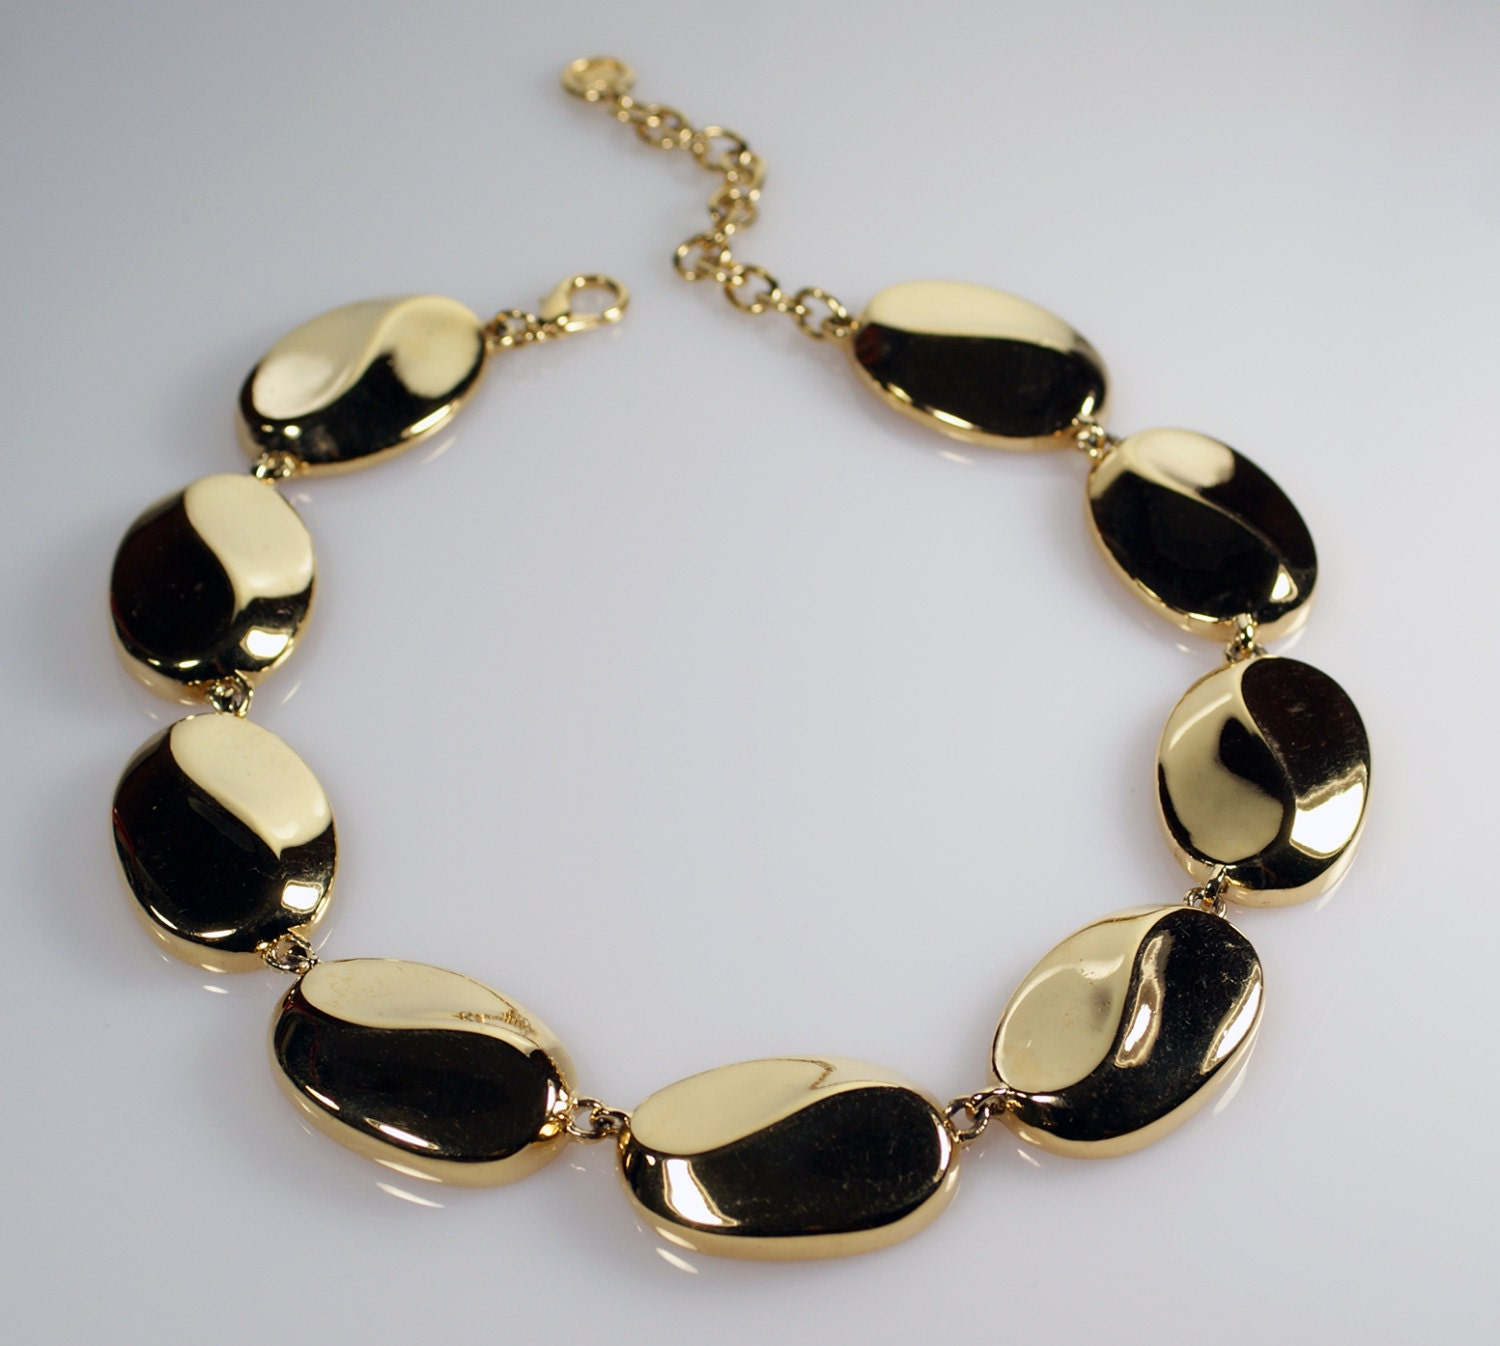 Givenchy Necklace Givenchy Jewelry Vintage Gold Tone Choker